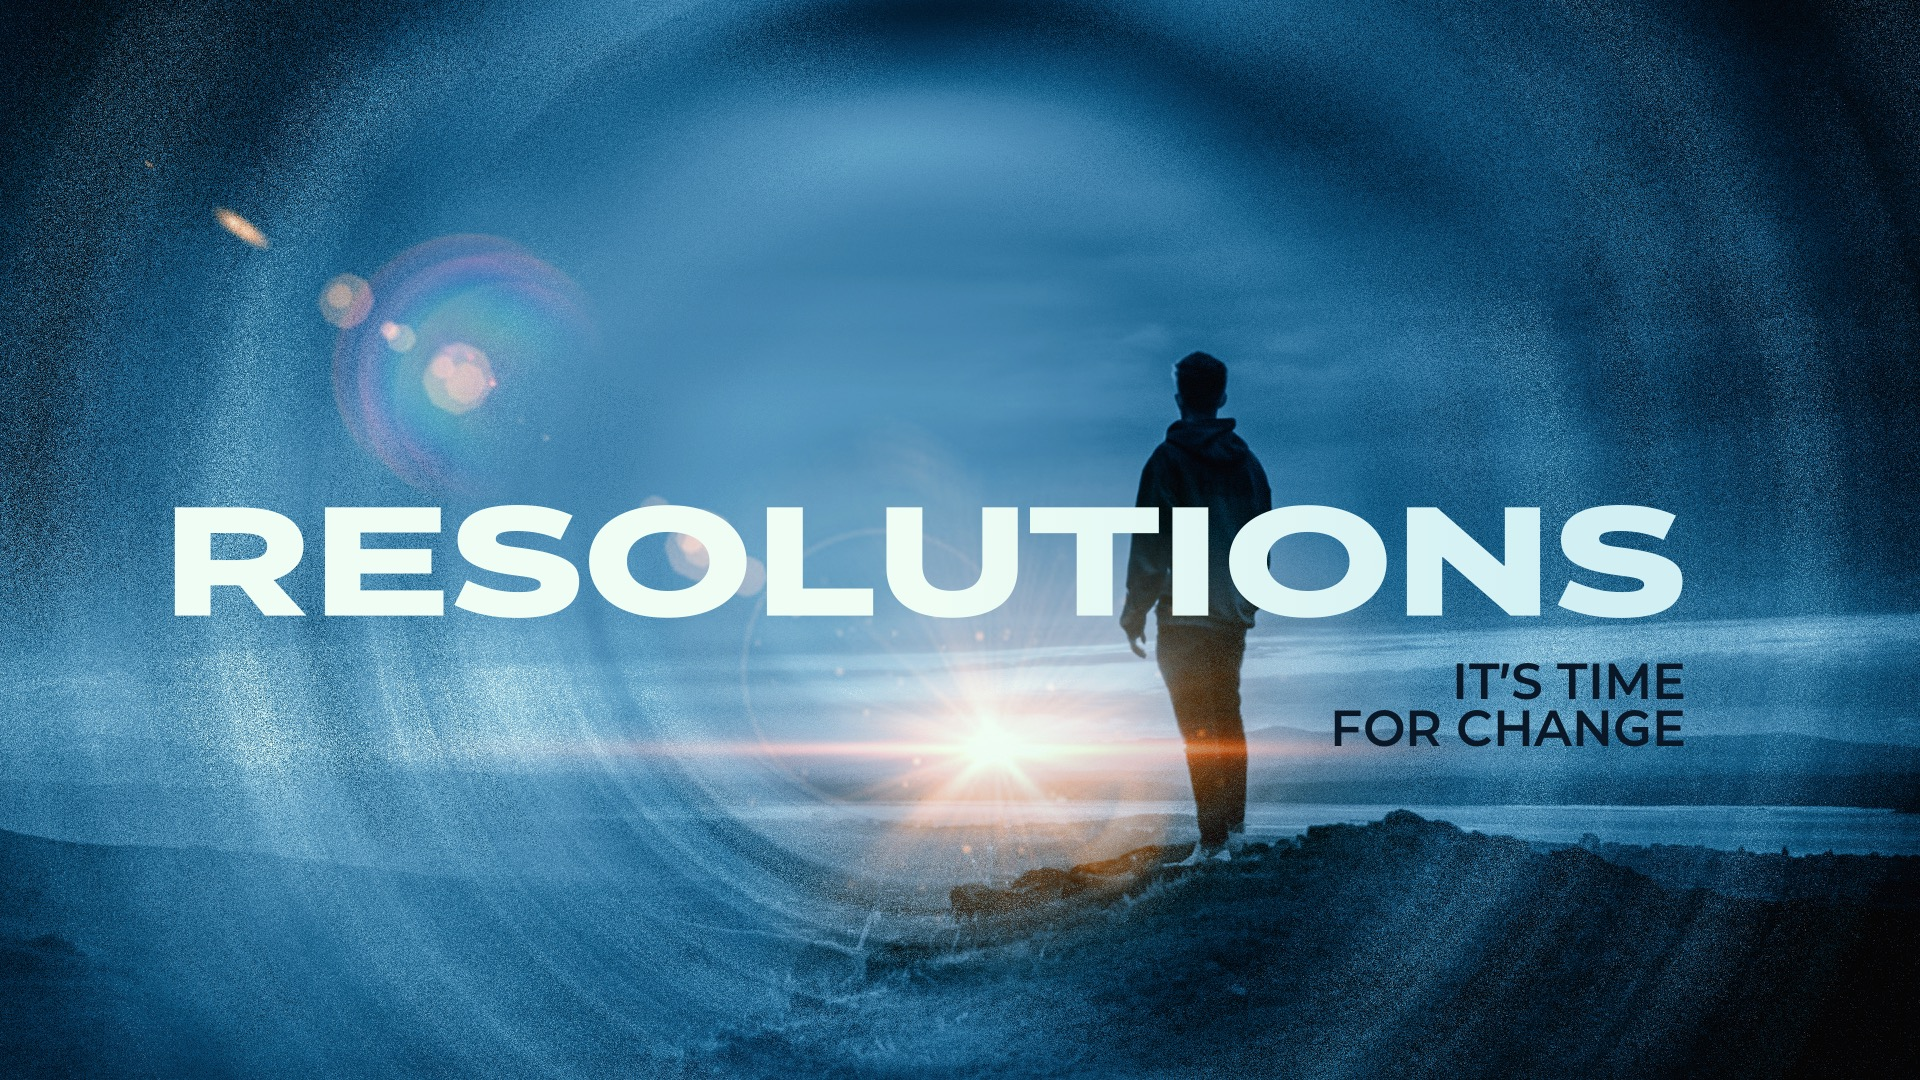 Resolutions Wk 3: How To Stay Resolved